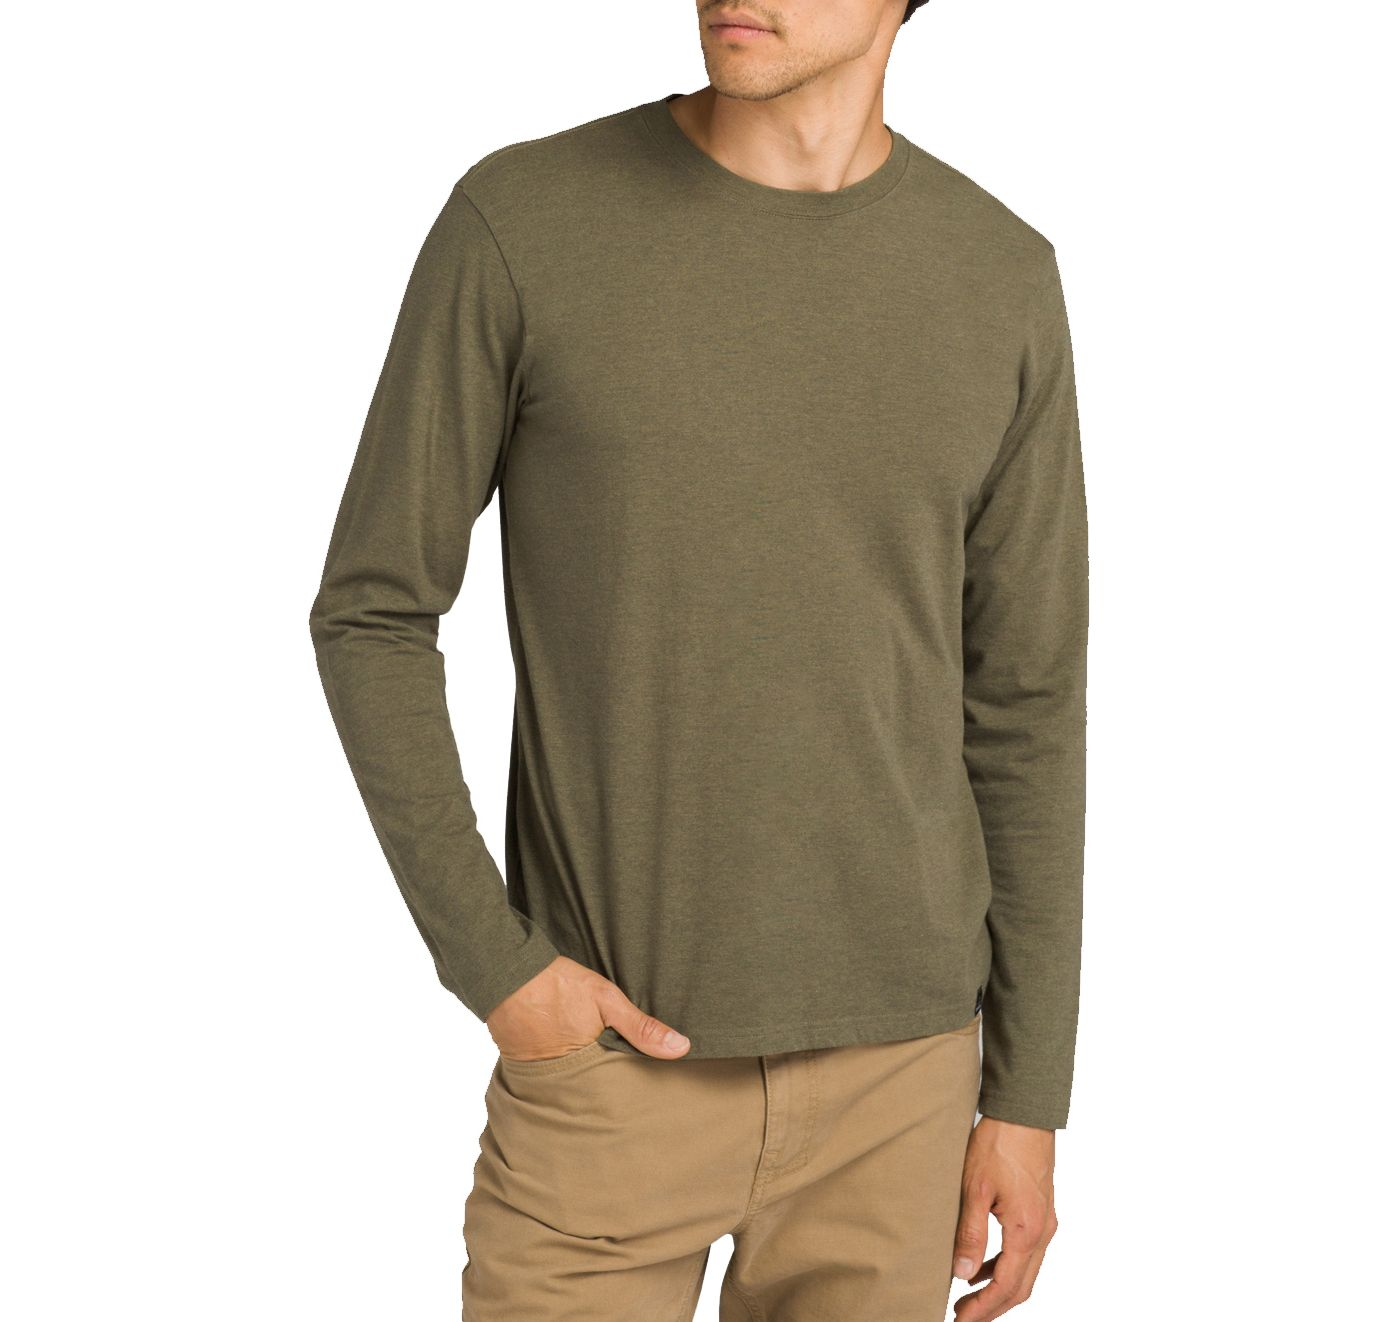 prAna Men's Long Sleeve Crew T-Shirt